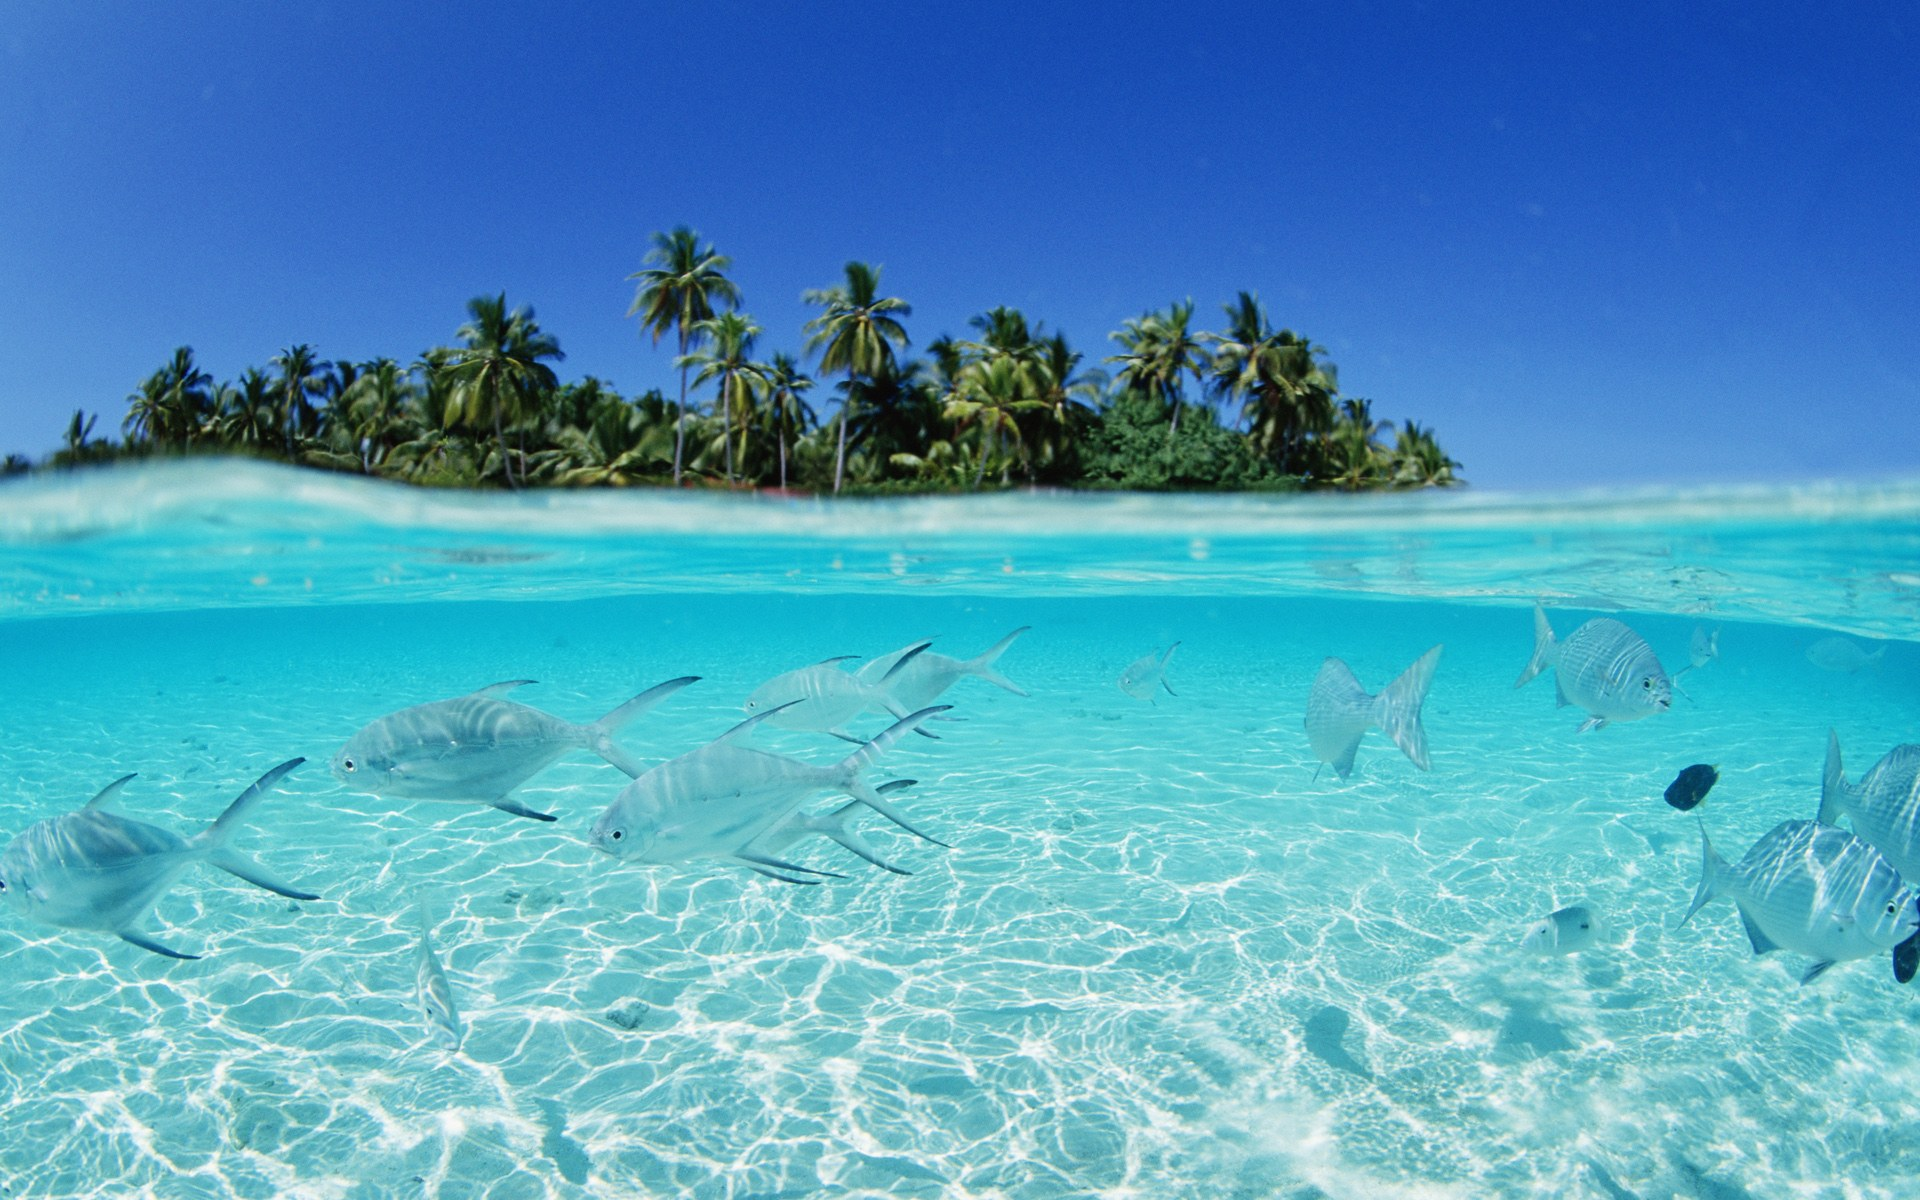 Facts you do not know for Maldives (6)